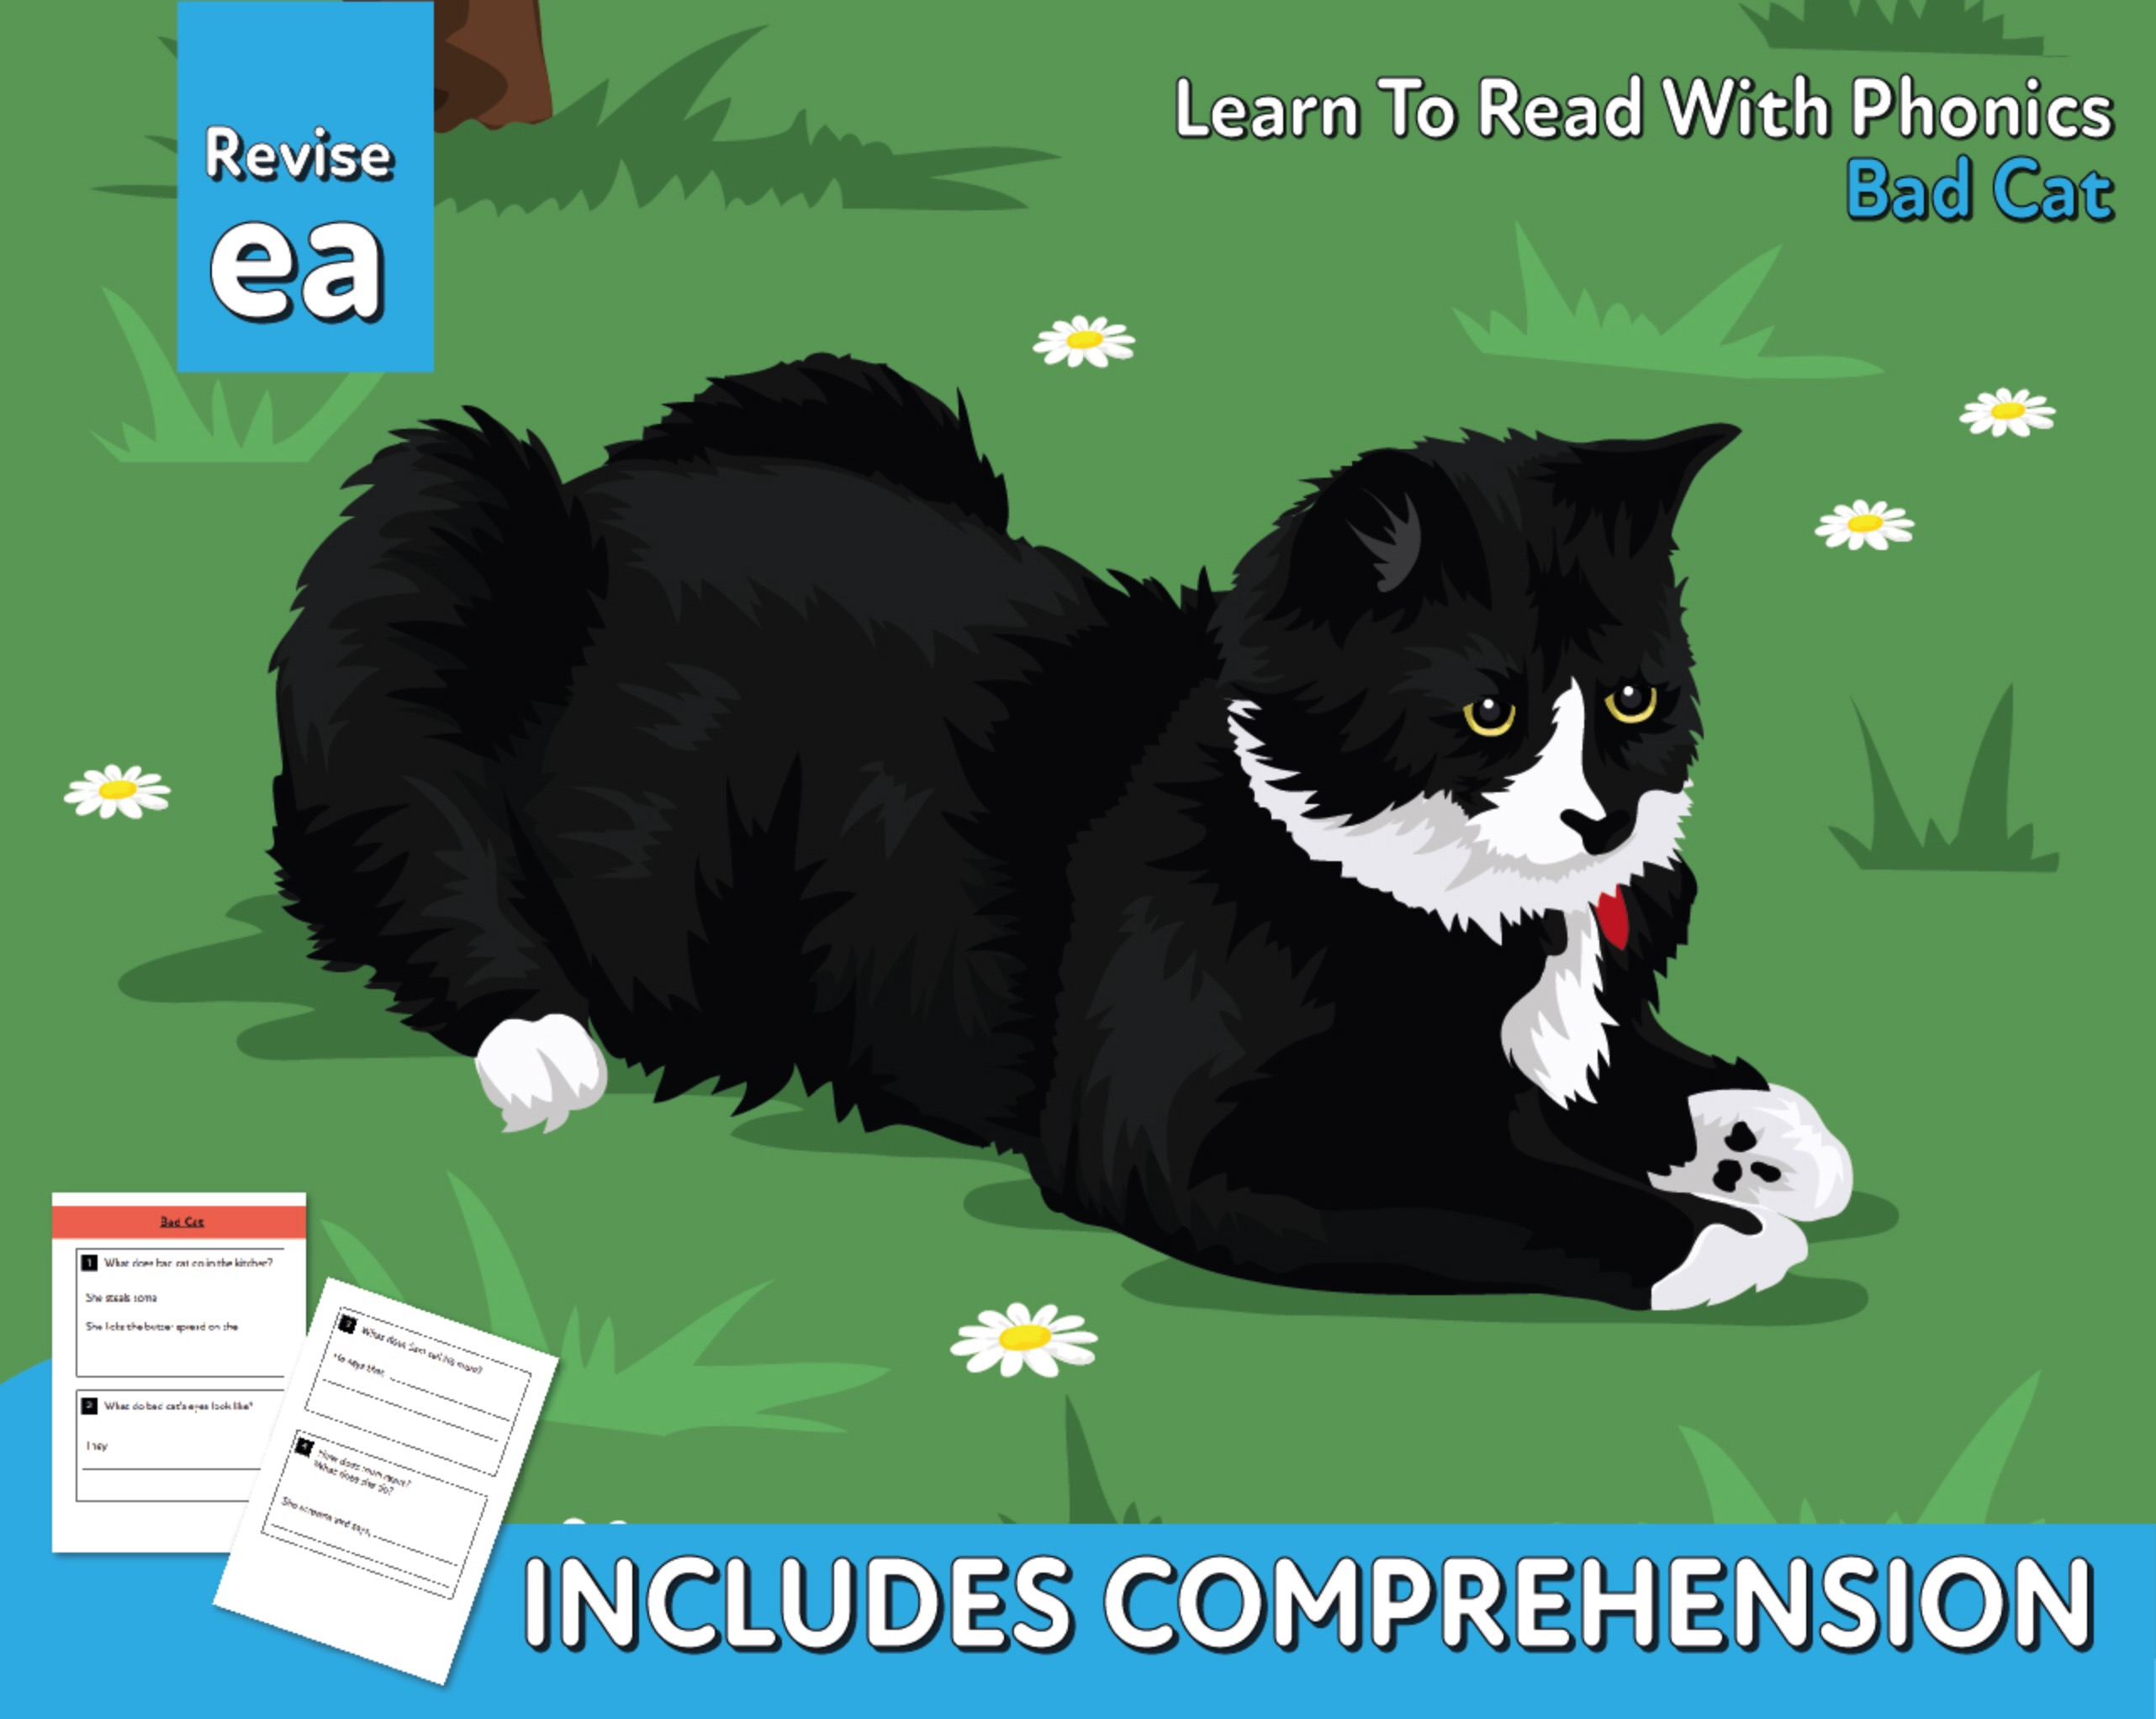 Reading Comprehension 'Bad Cat' (4-8 years)